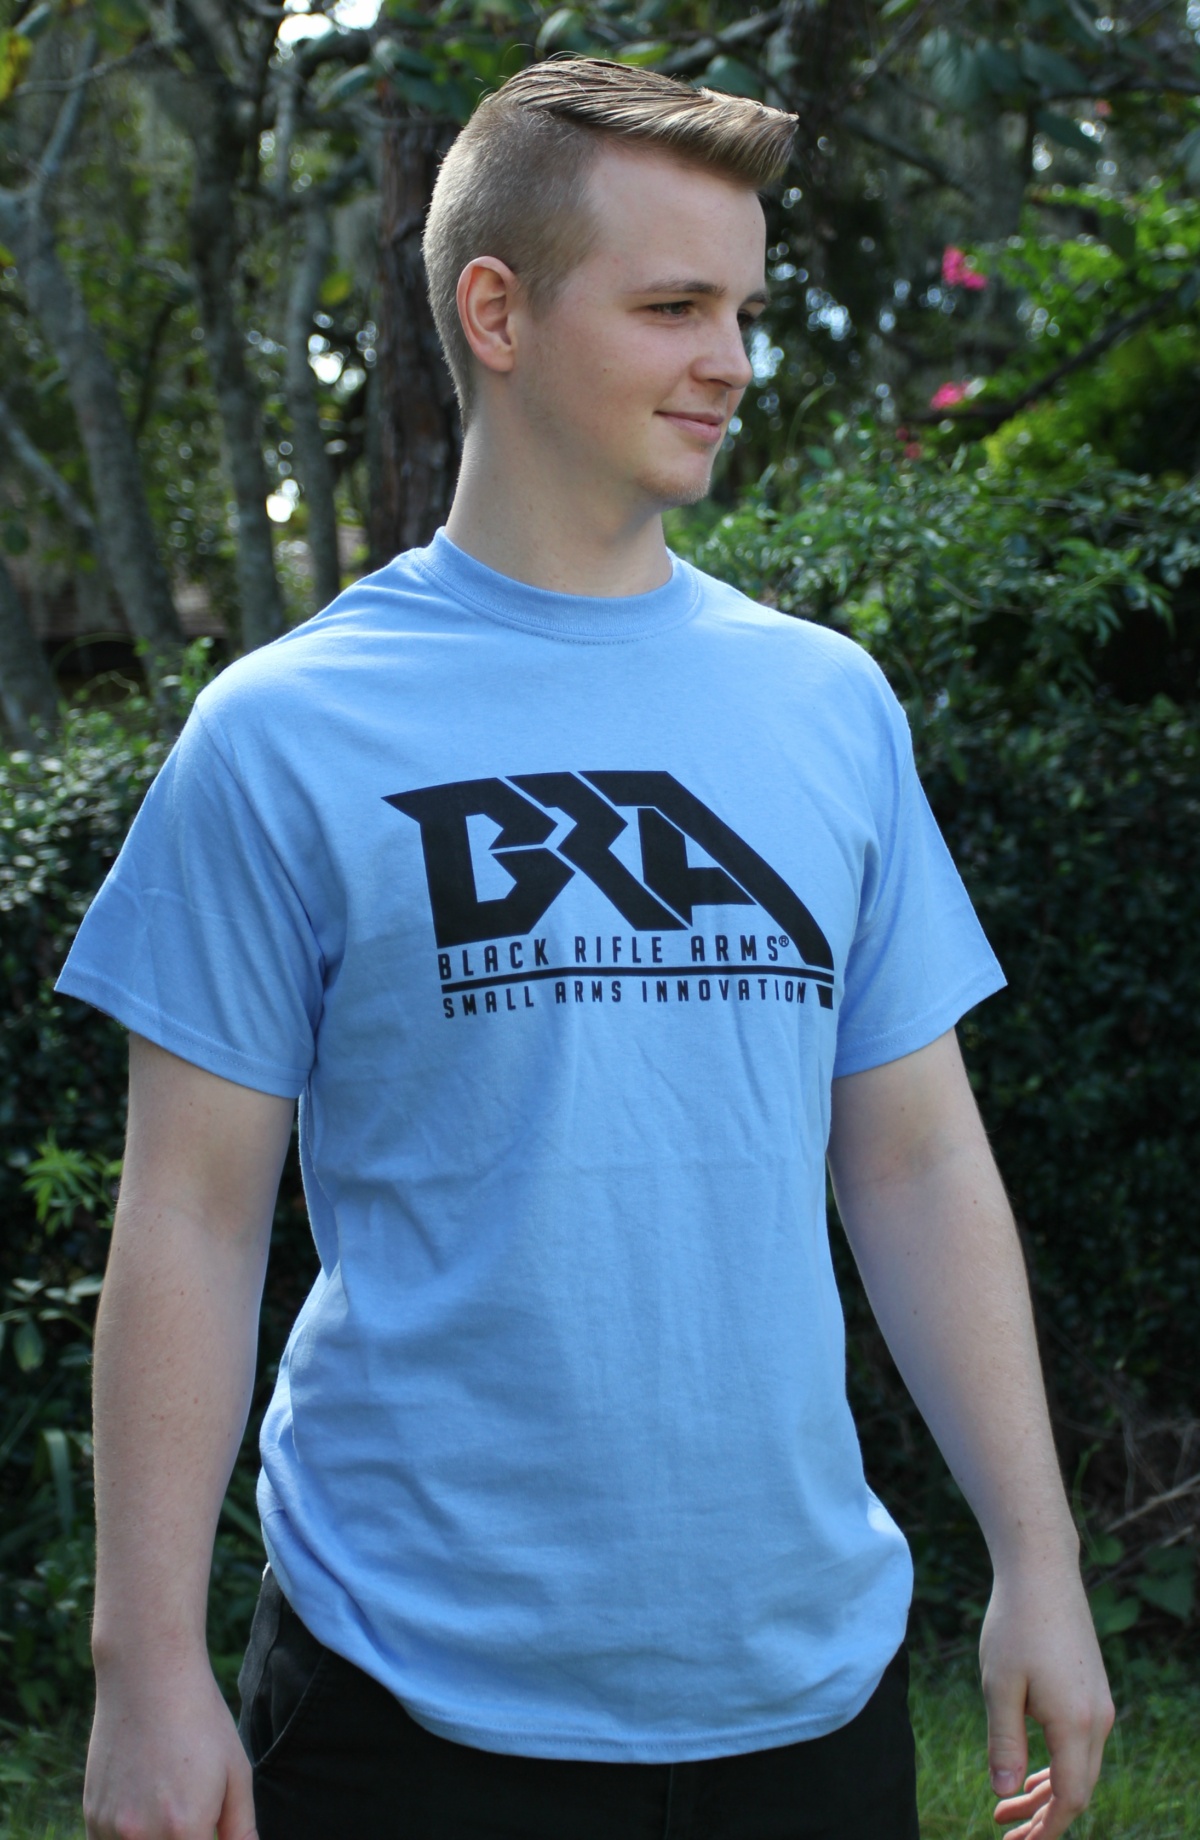 Black Rifle Arms Caroline Blue Logo T-Shirt